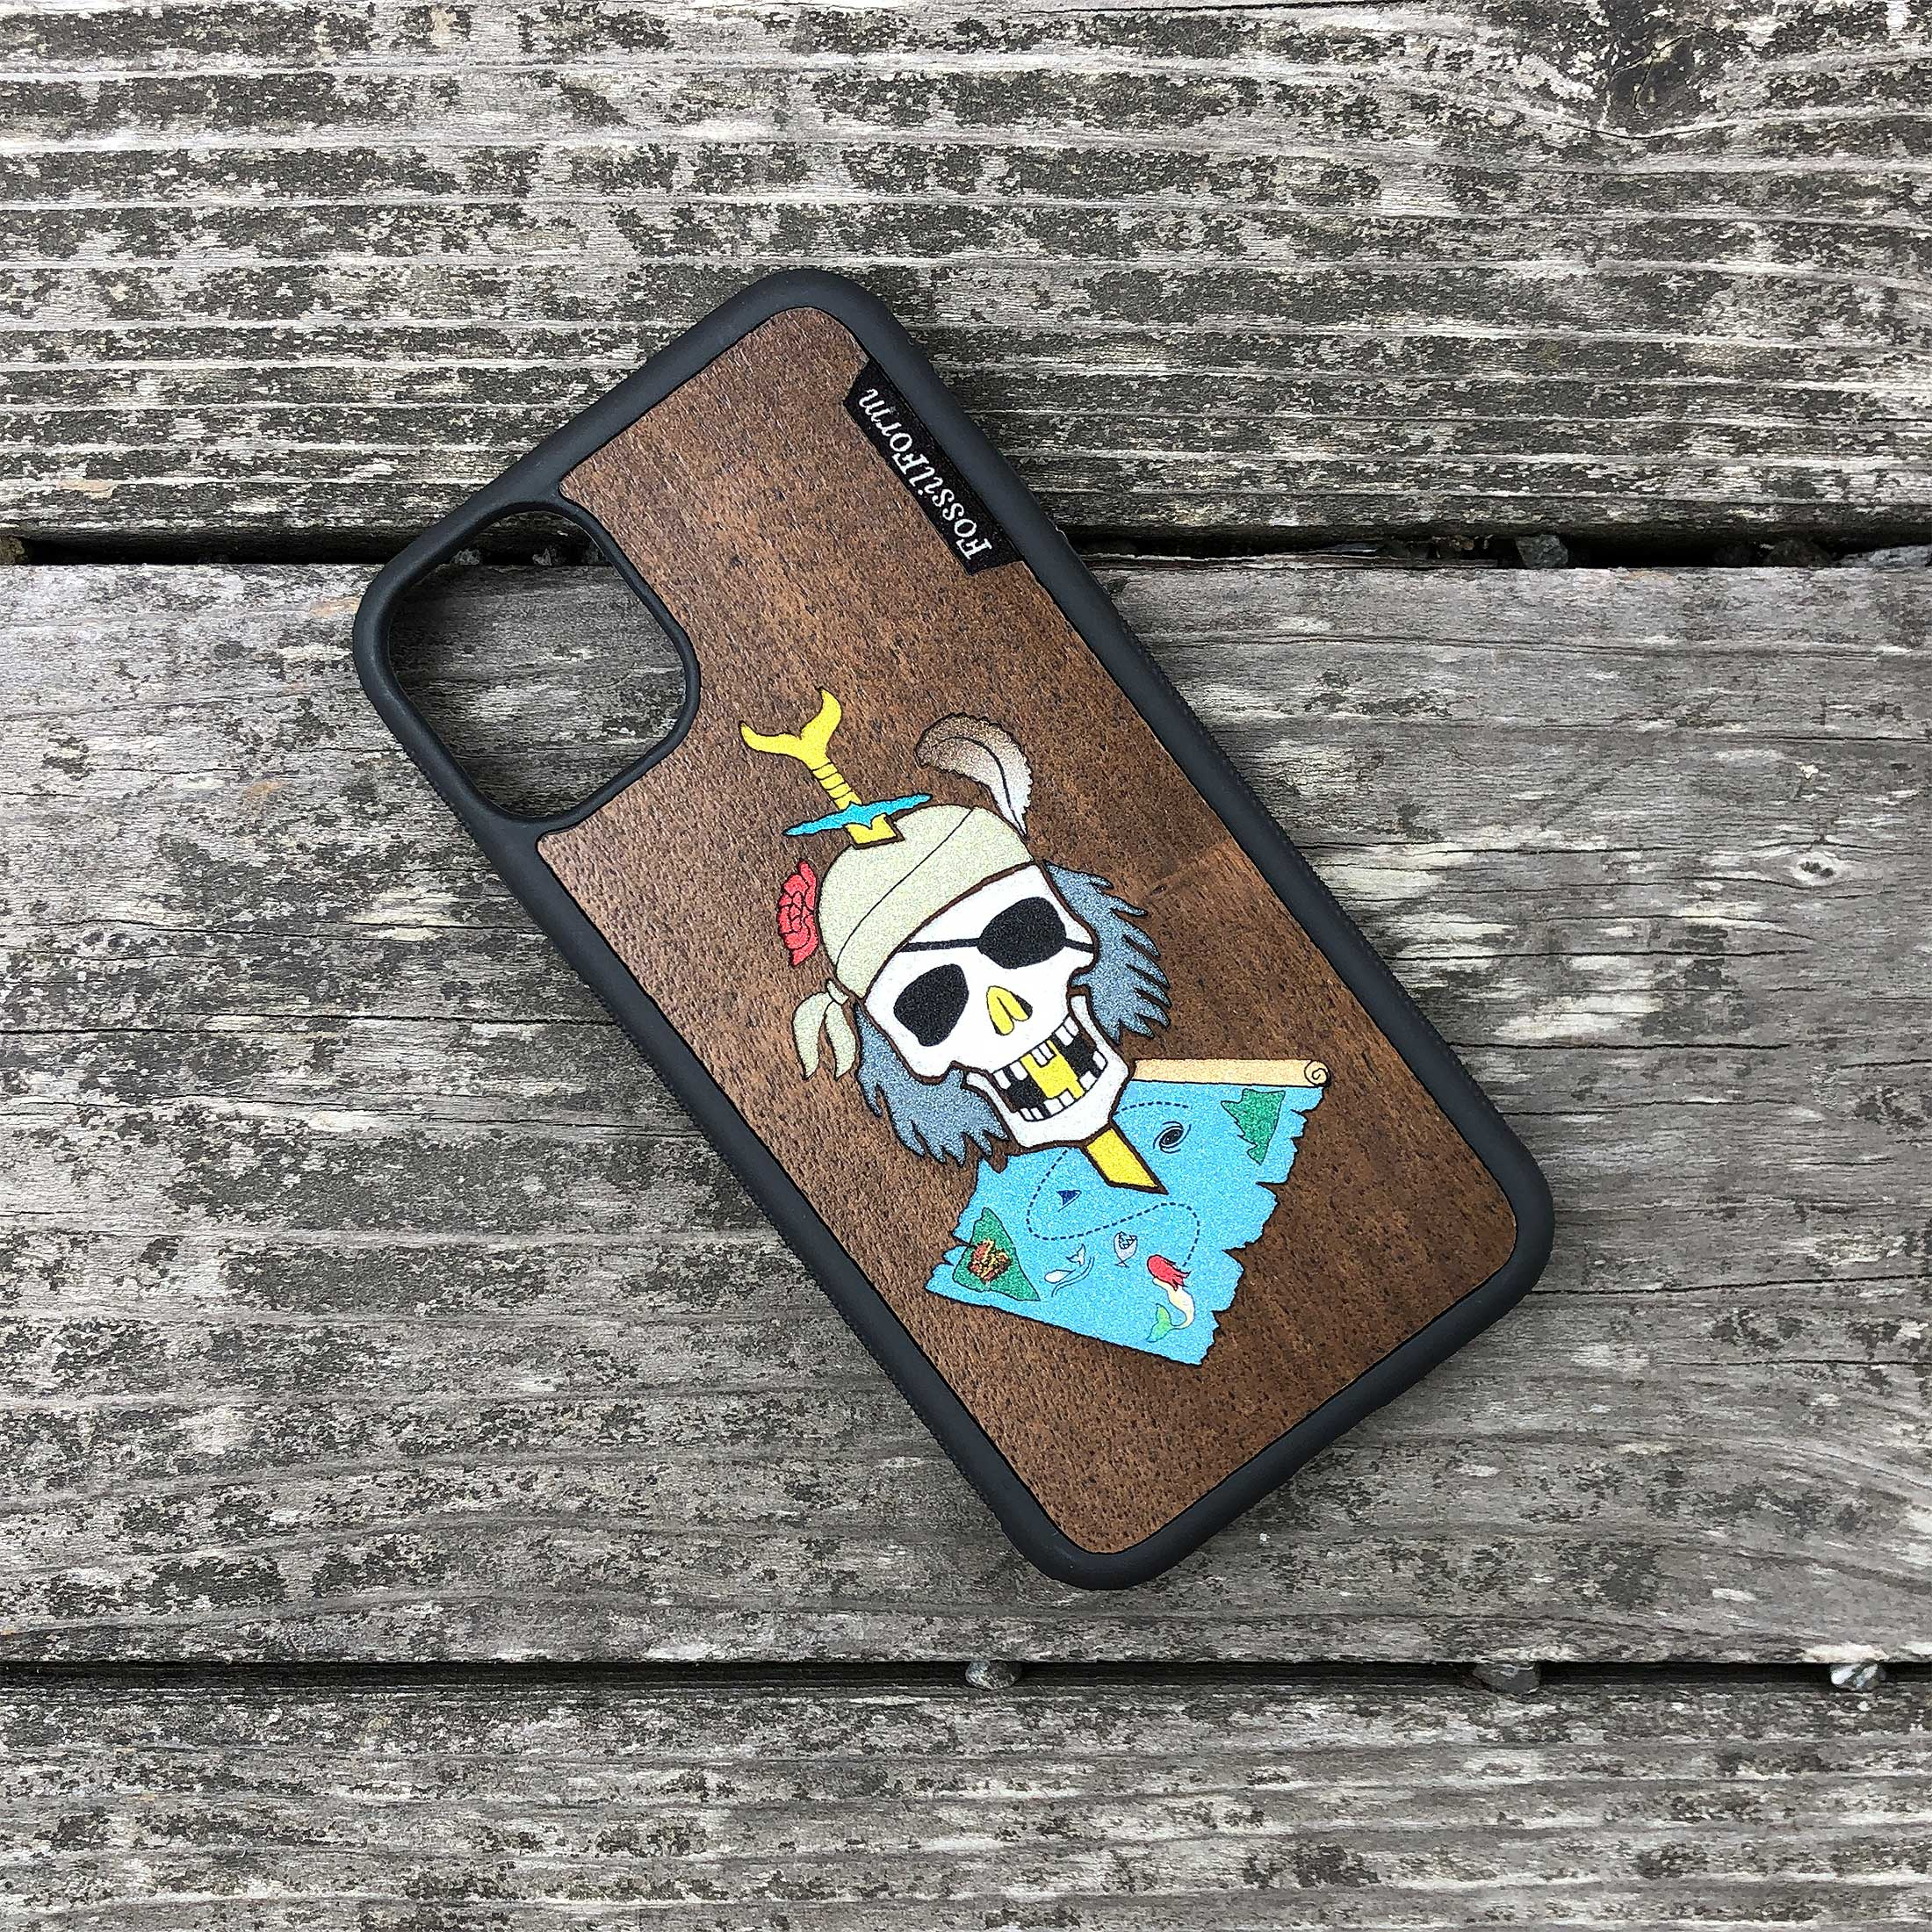 Dead Pirate - Wood & Resin Case - Black